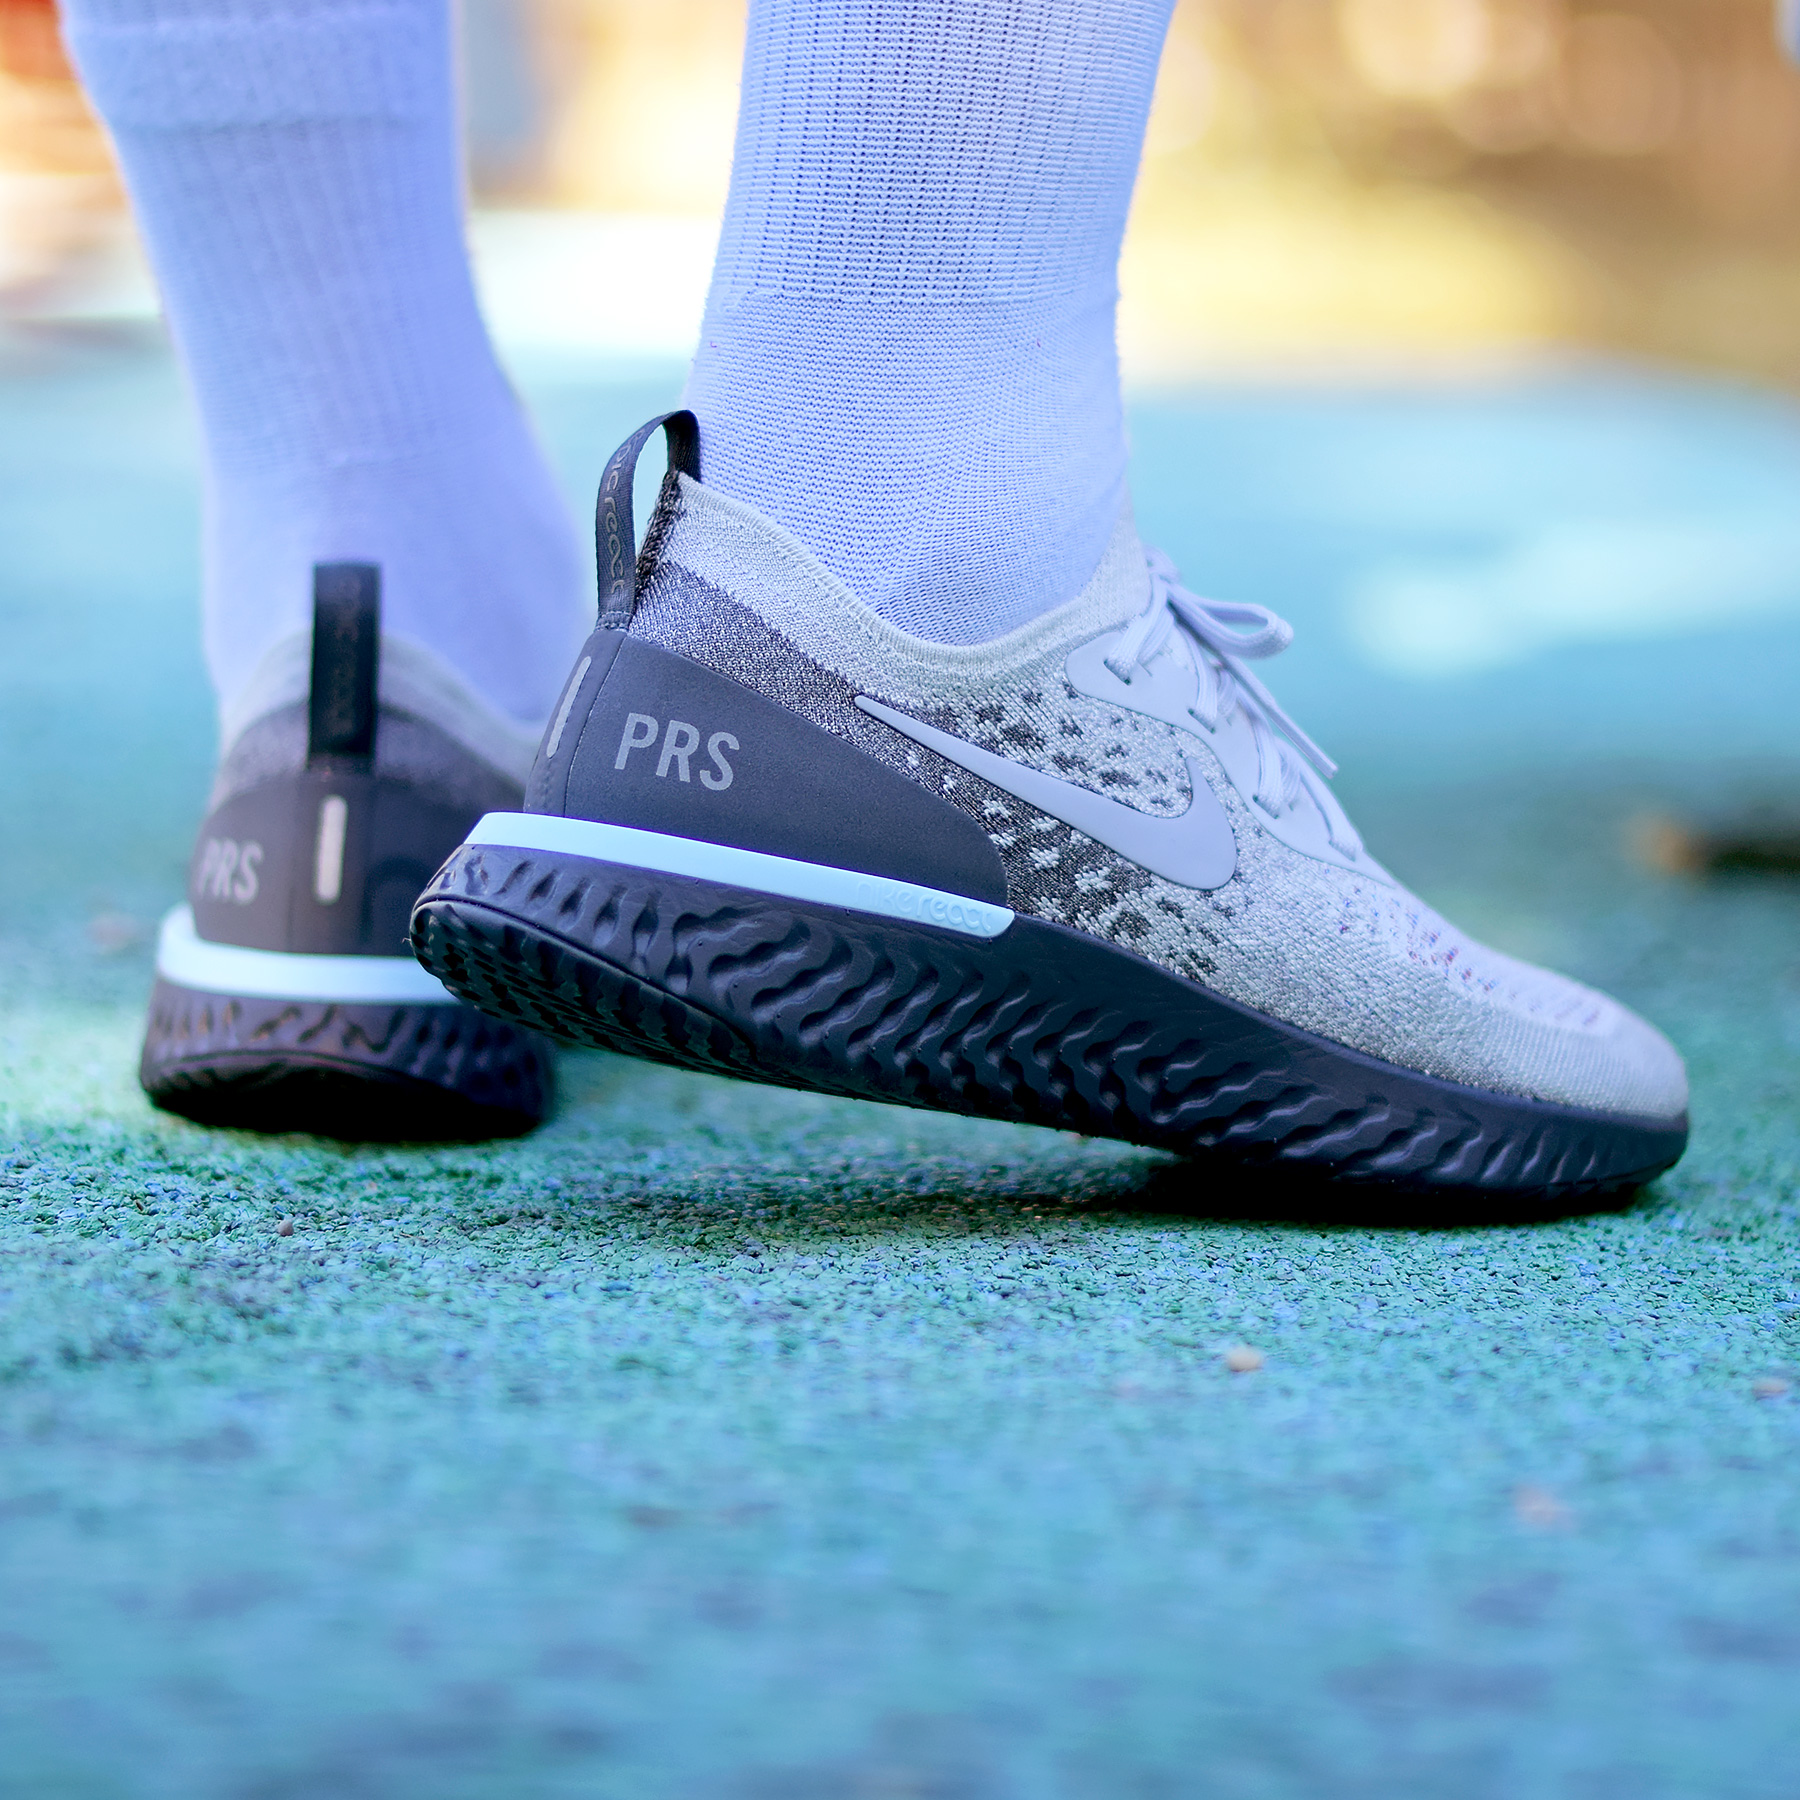 73a4bac23b3 Nike Epic React Flyknit PARIS - There is no finish line - Sneakers.fr